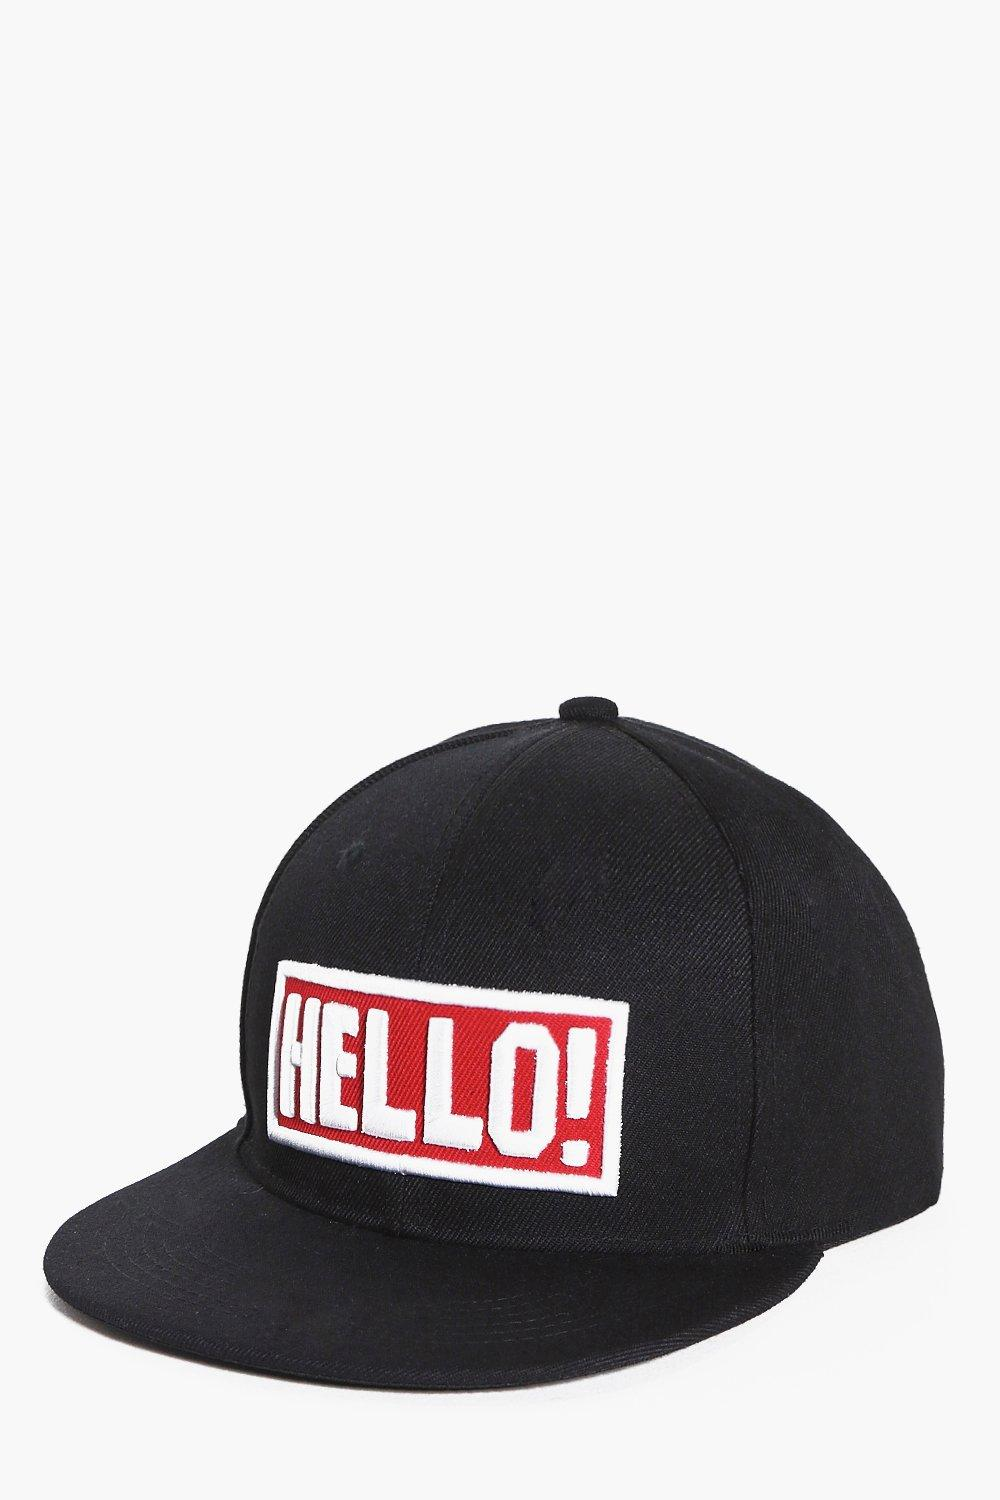 Hello! Embroidered Snapback